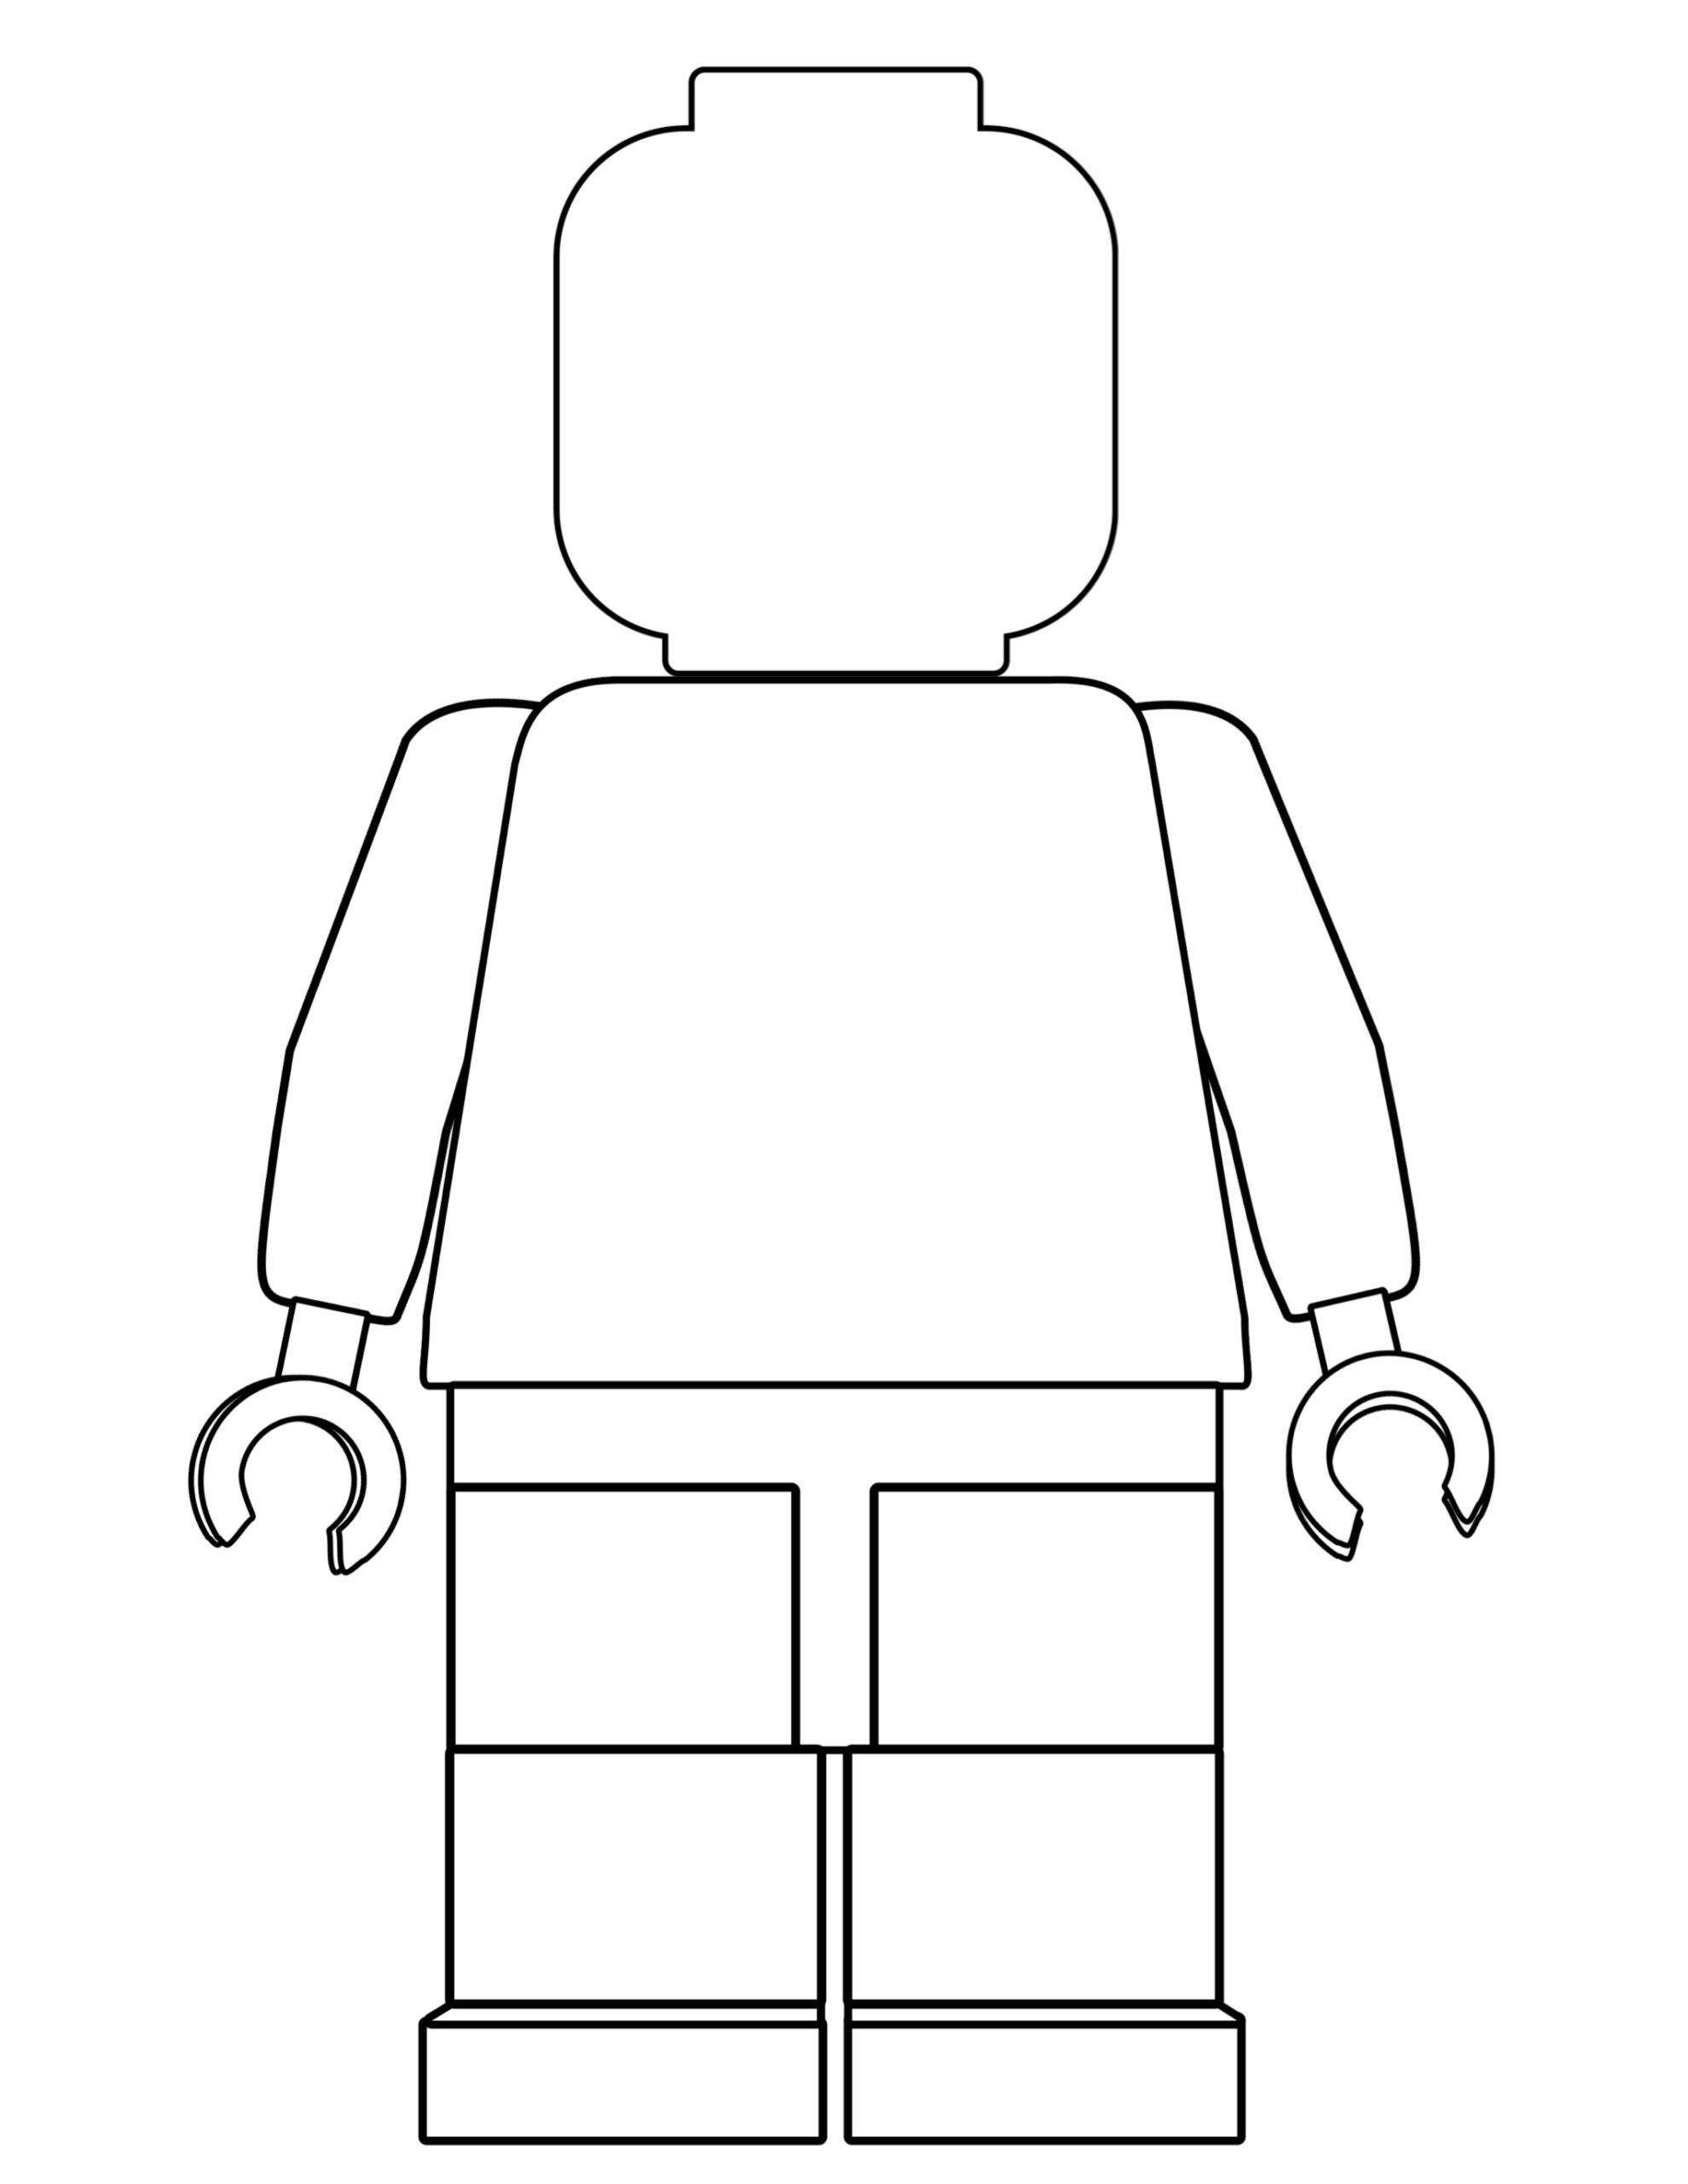 lego figure coloring pages free printable lego coloring pages paper trail design figure lego pages coloring